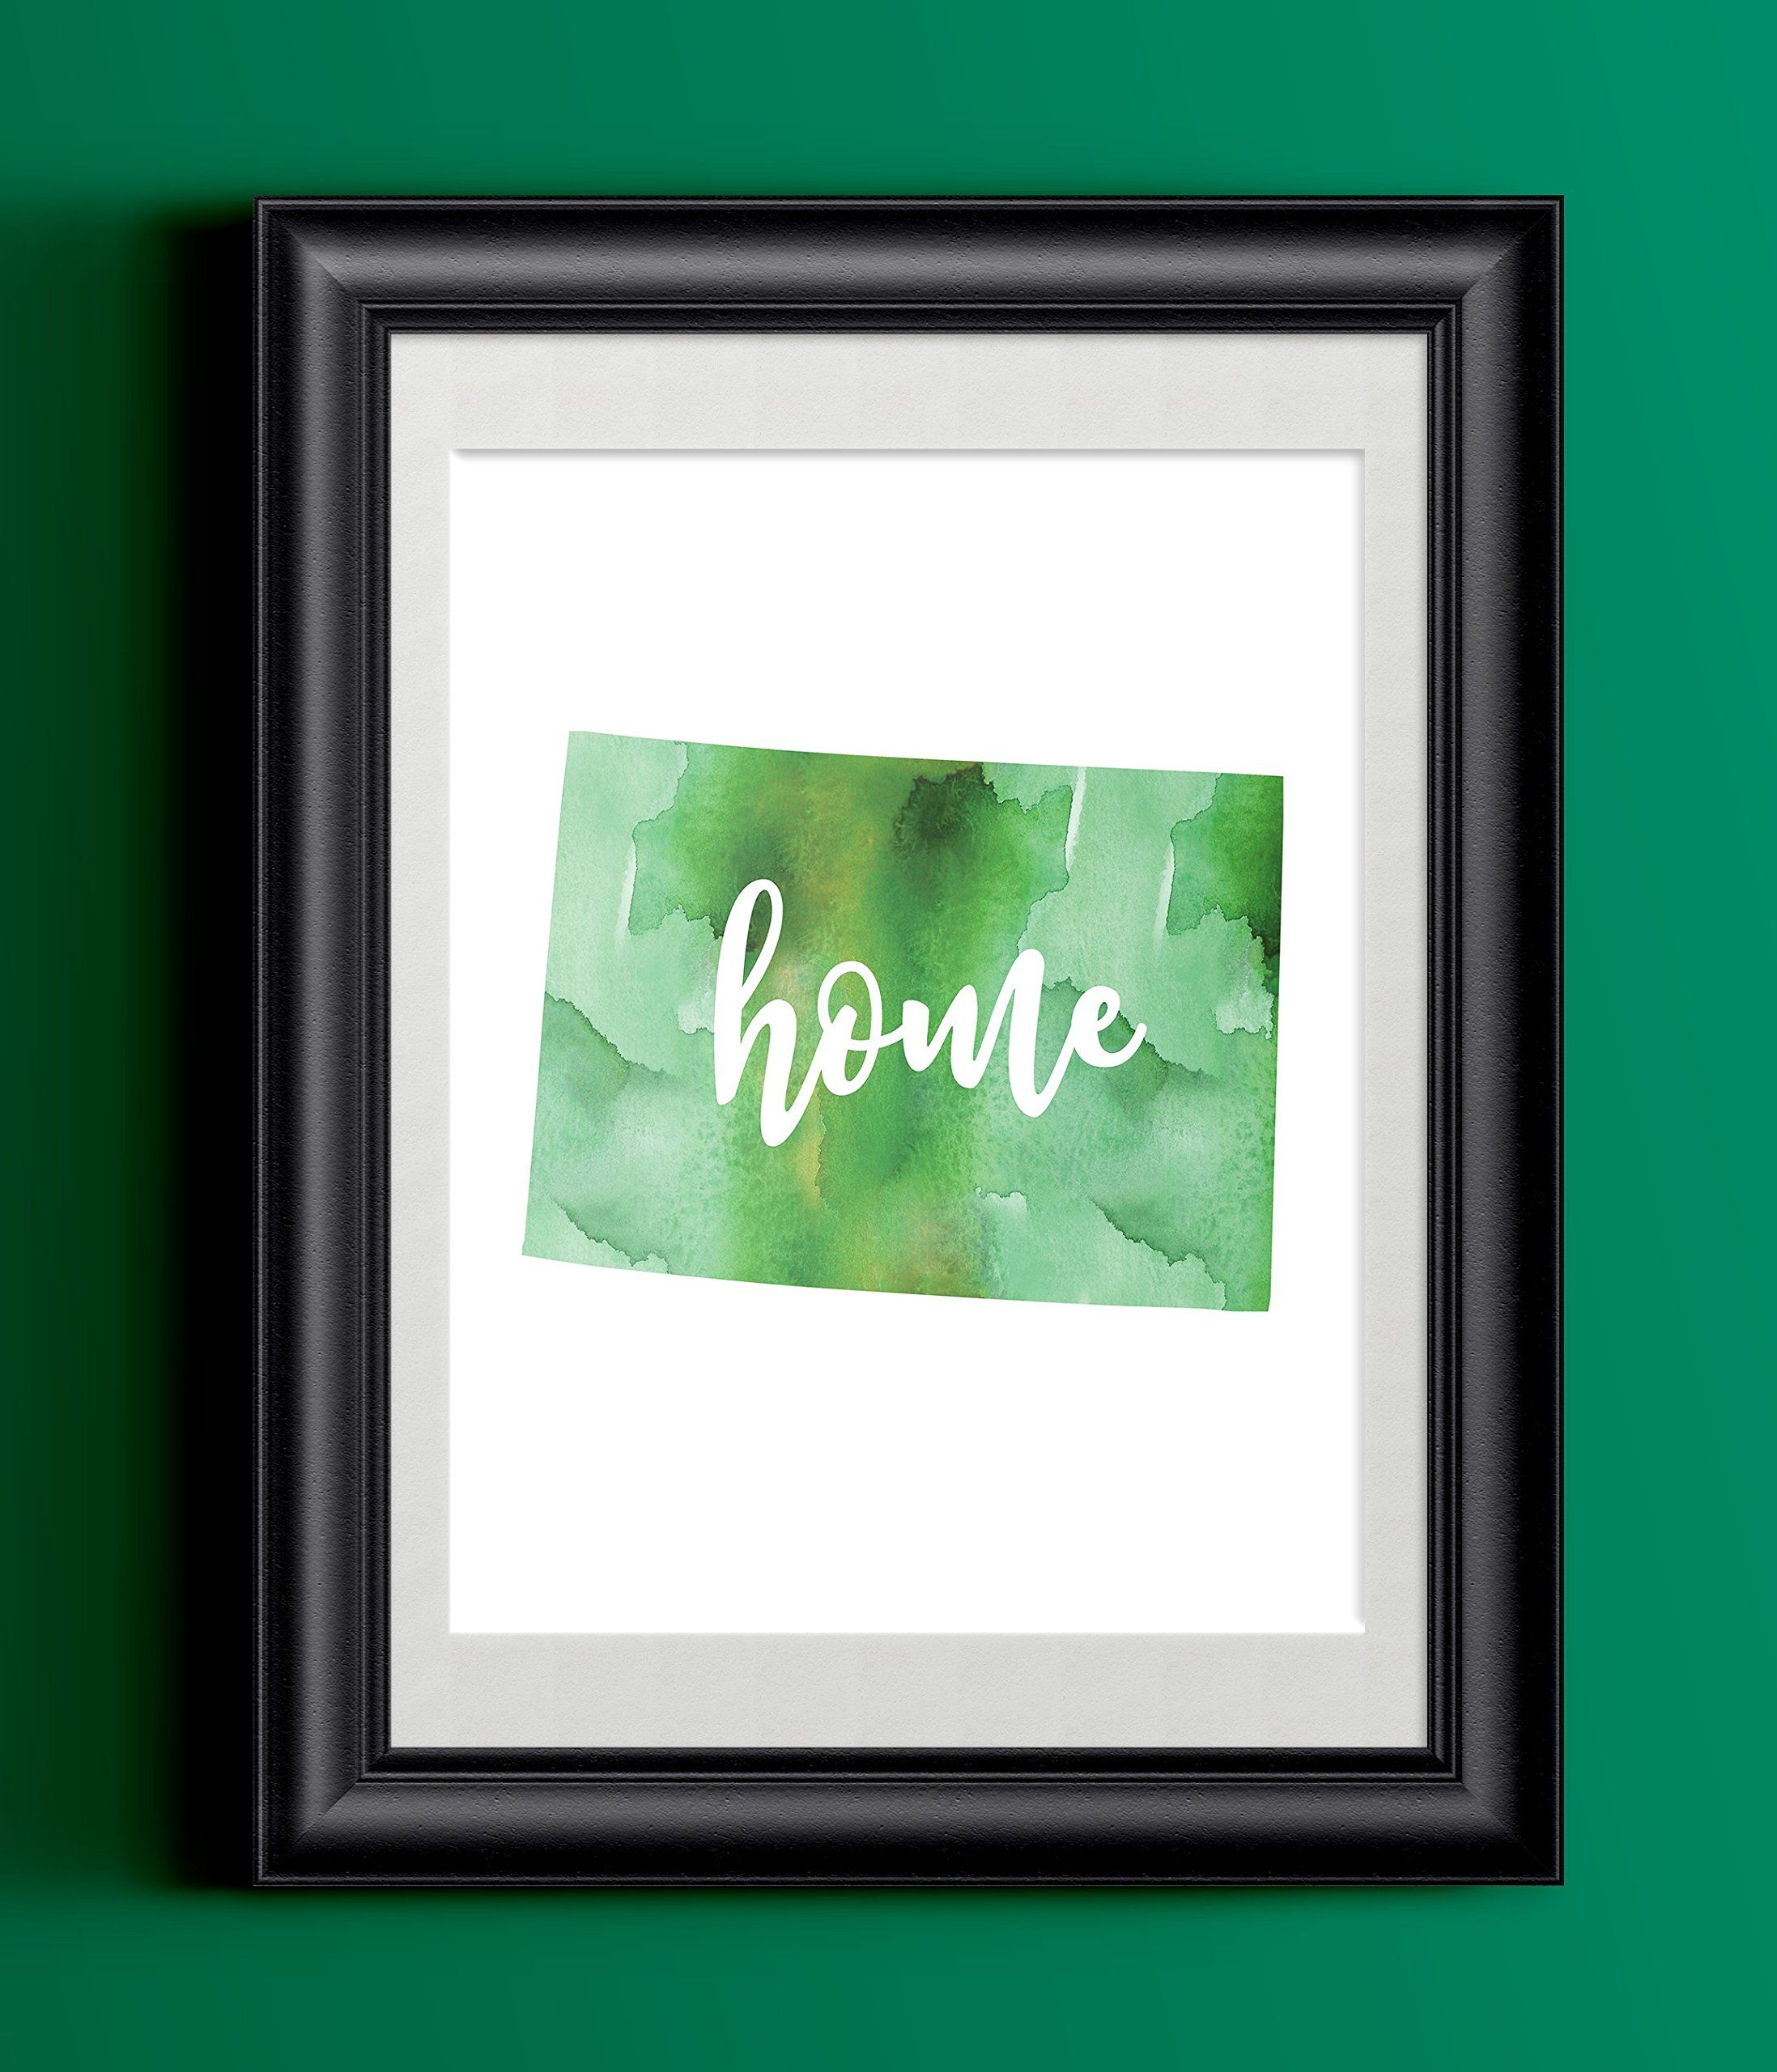 Colorado Home Watercolor Print   State Home Print   Wall Decor. This gorgeous watercolor Colorado home print is printed on 8.5 x 11 110 lb cardstock with high quality archival inks to insure this gorgeous print never fades *Please note: These prints are on 8.5x11 110lb cardstock, and are not designed to be trimmed down for an 8x10 frame. If you wish to frame them, you will need an actual 8.5x11 frame.*.